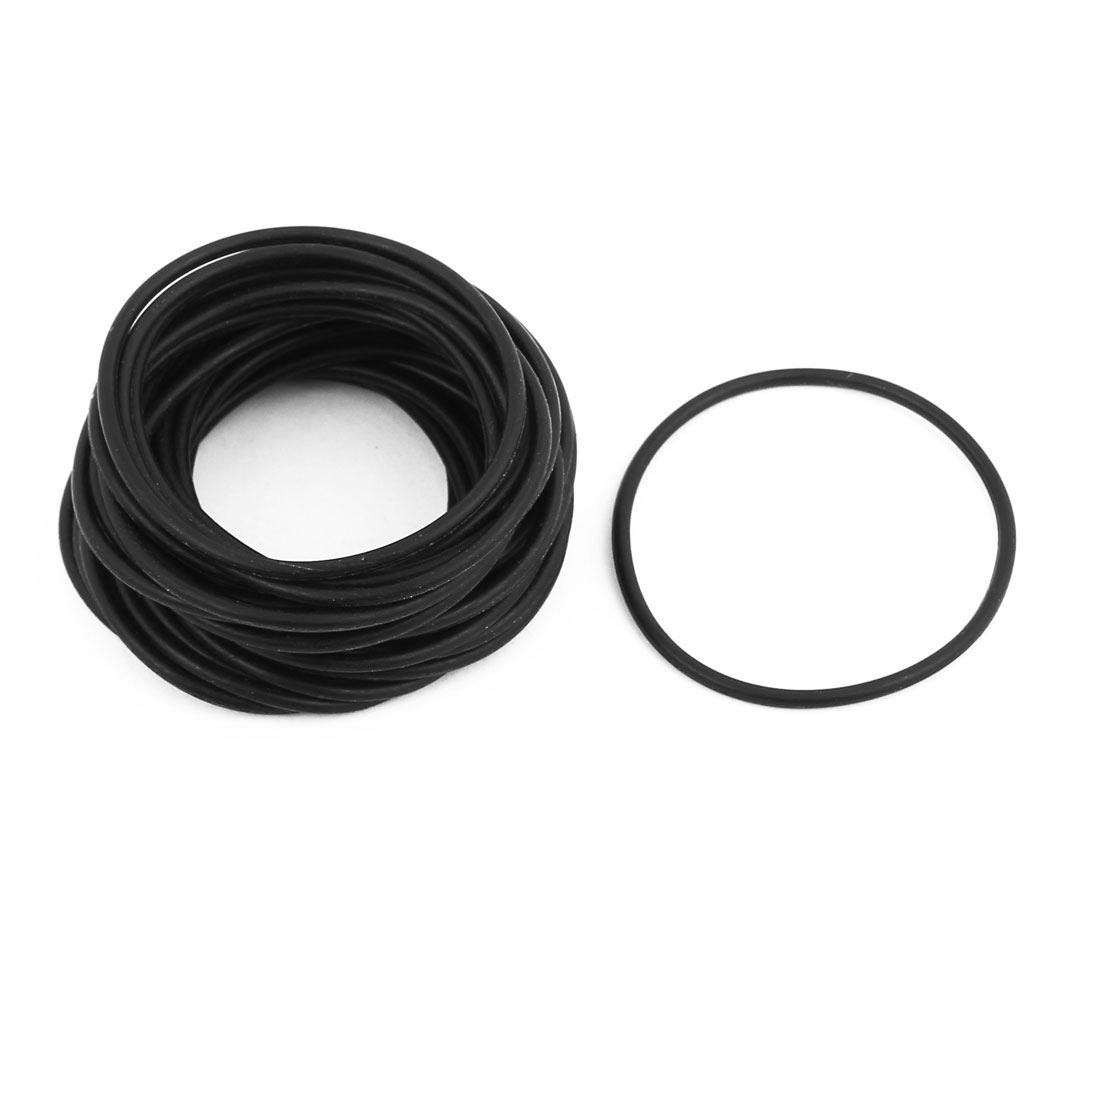 30pcs 45mm X 19mm Rubber O Rings Nbr Heat Resistant Sealing Ring Wiring Grommets Black